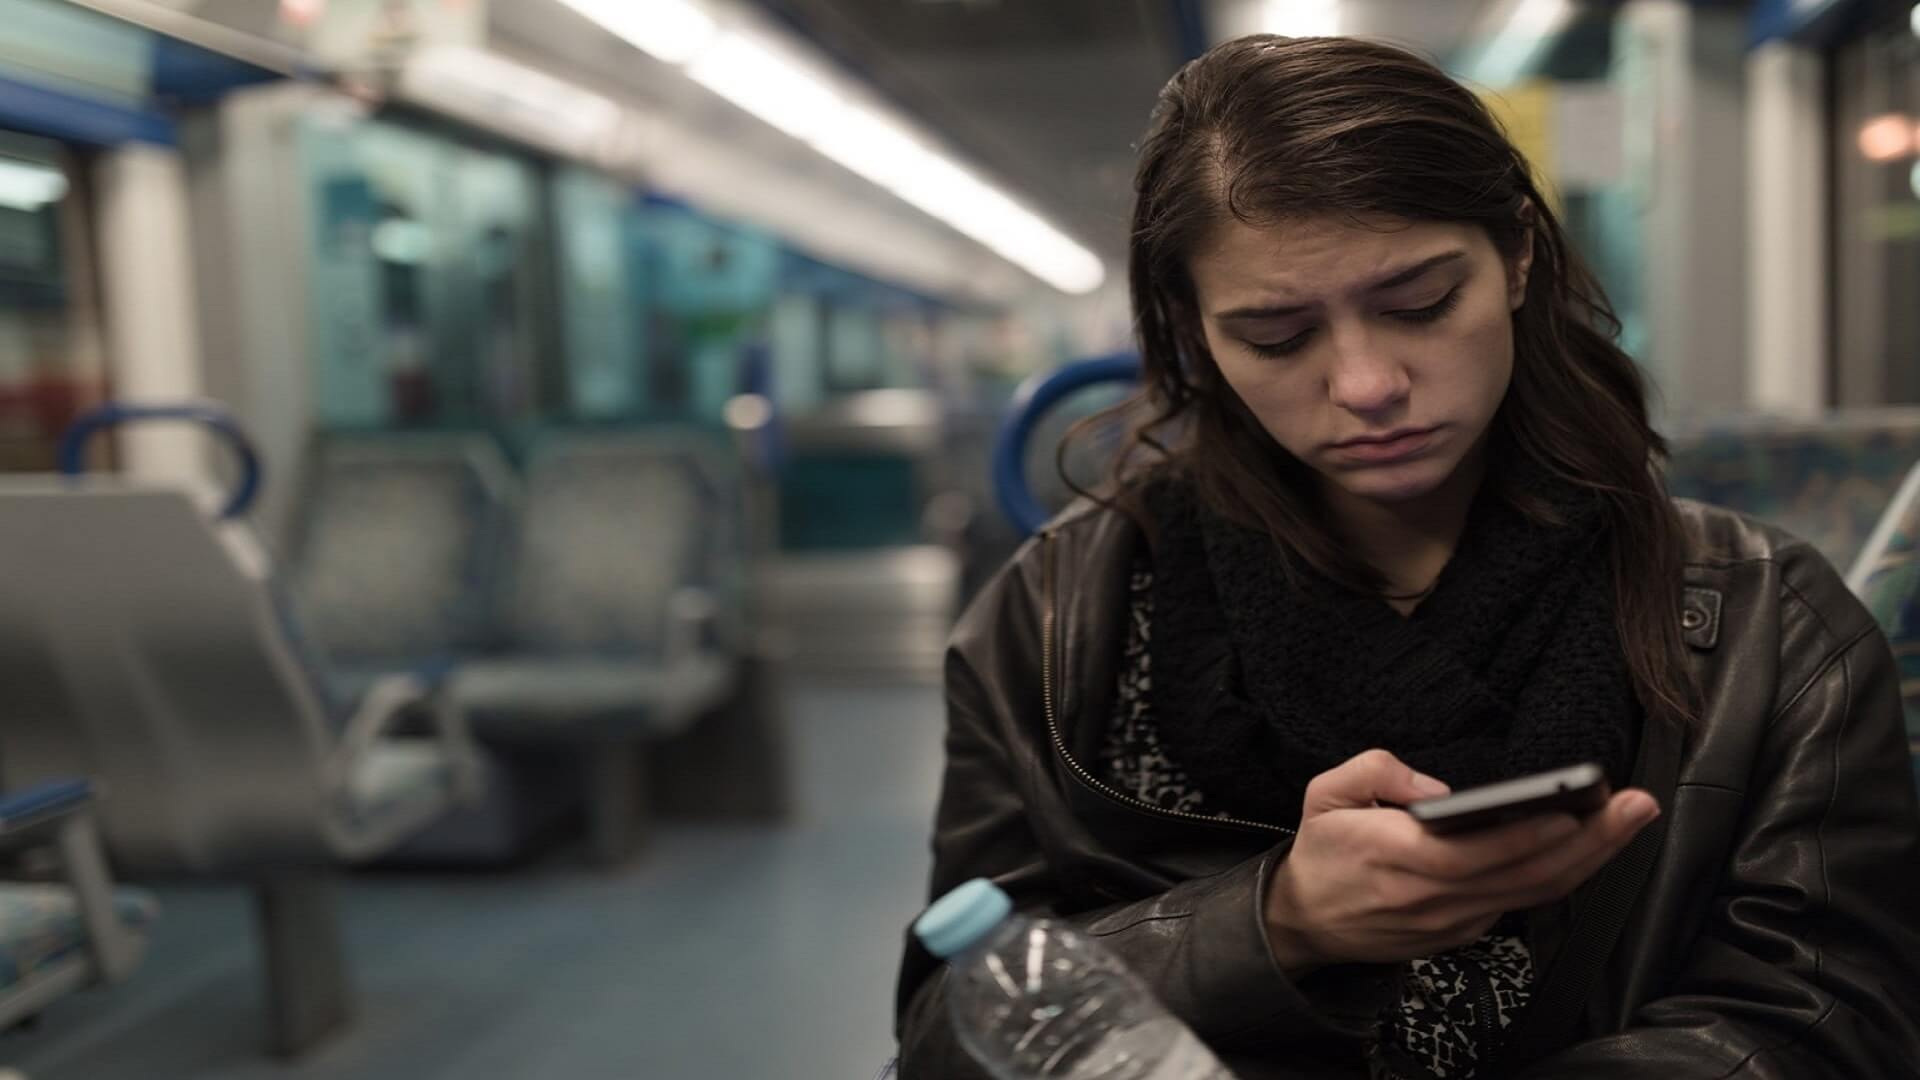 unhappy woman with pms on the train 1